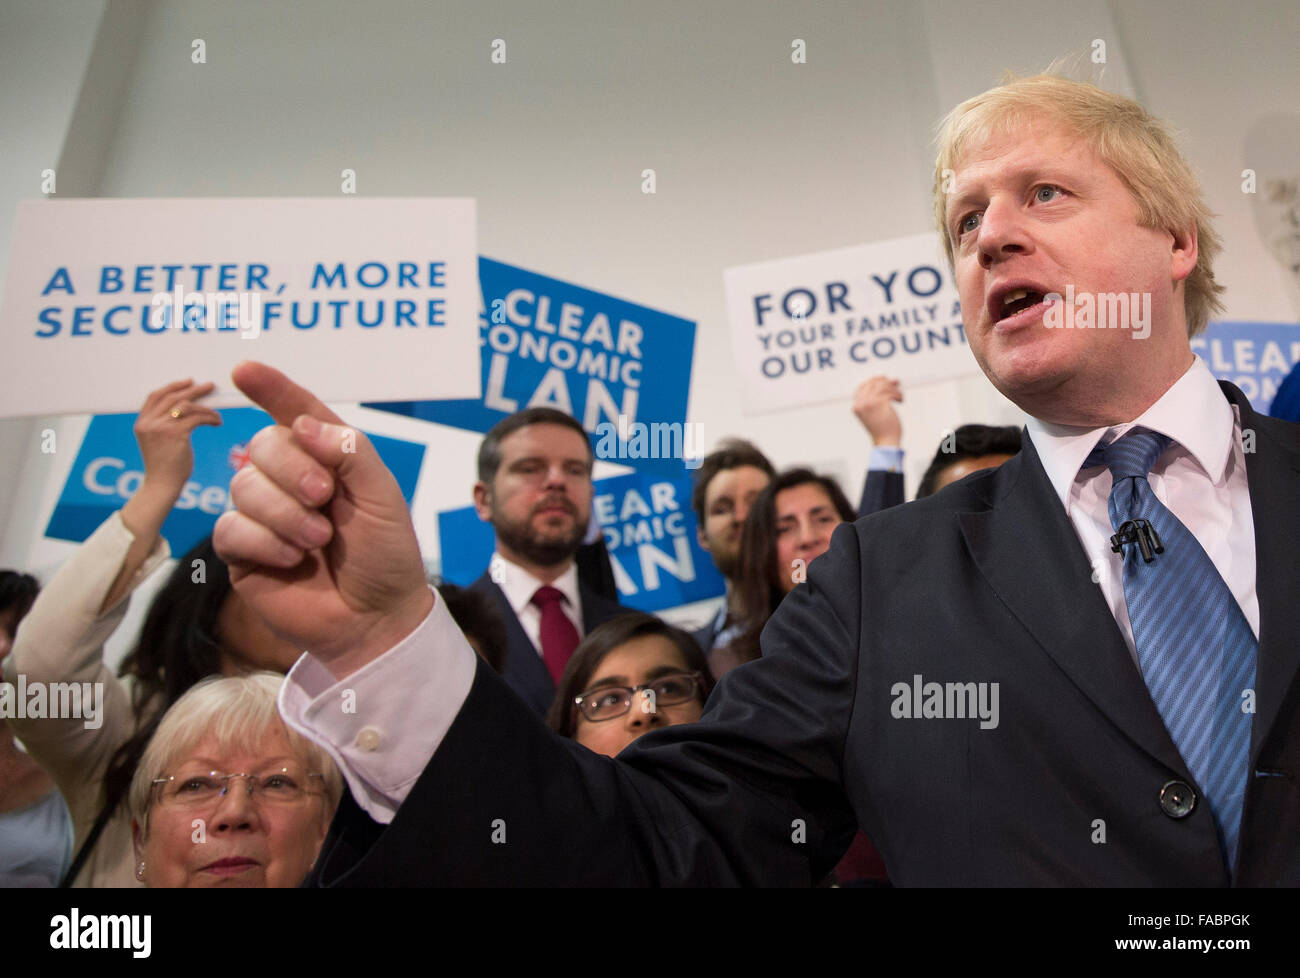 The Conservative Mayor of London Boris Johnson campaigns in north London during the 2015 UK elections - Stock Image